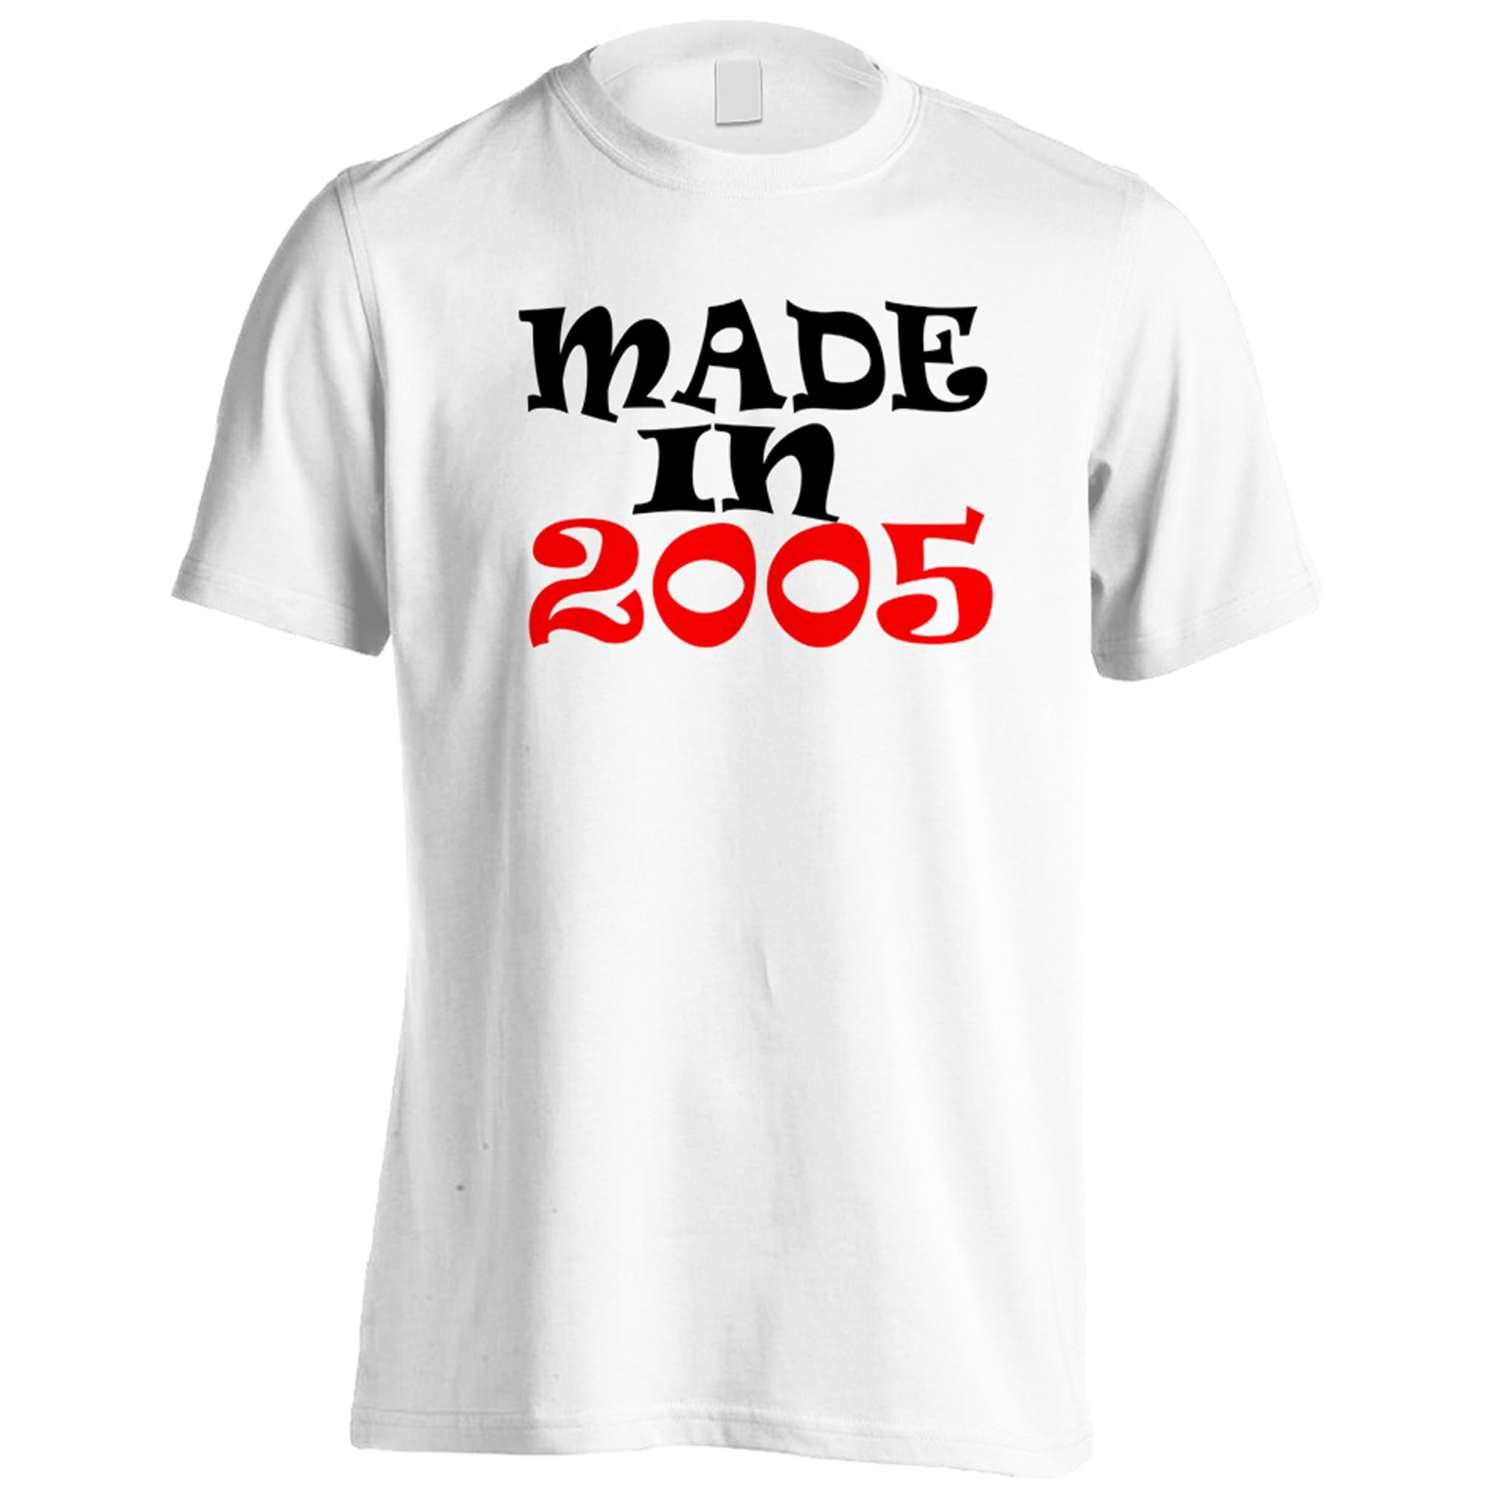 MADE IN 2005 Funny Novelty New Men's T-Shirt Tee i81m